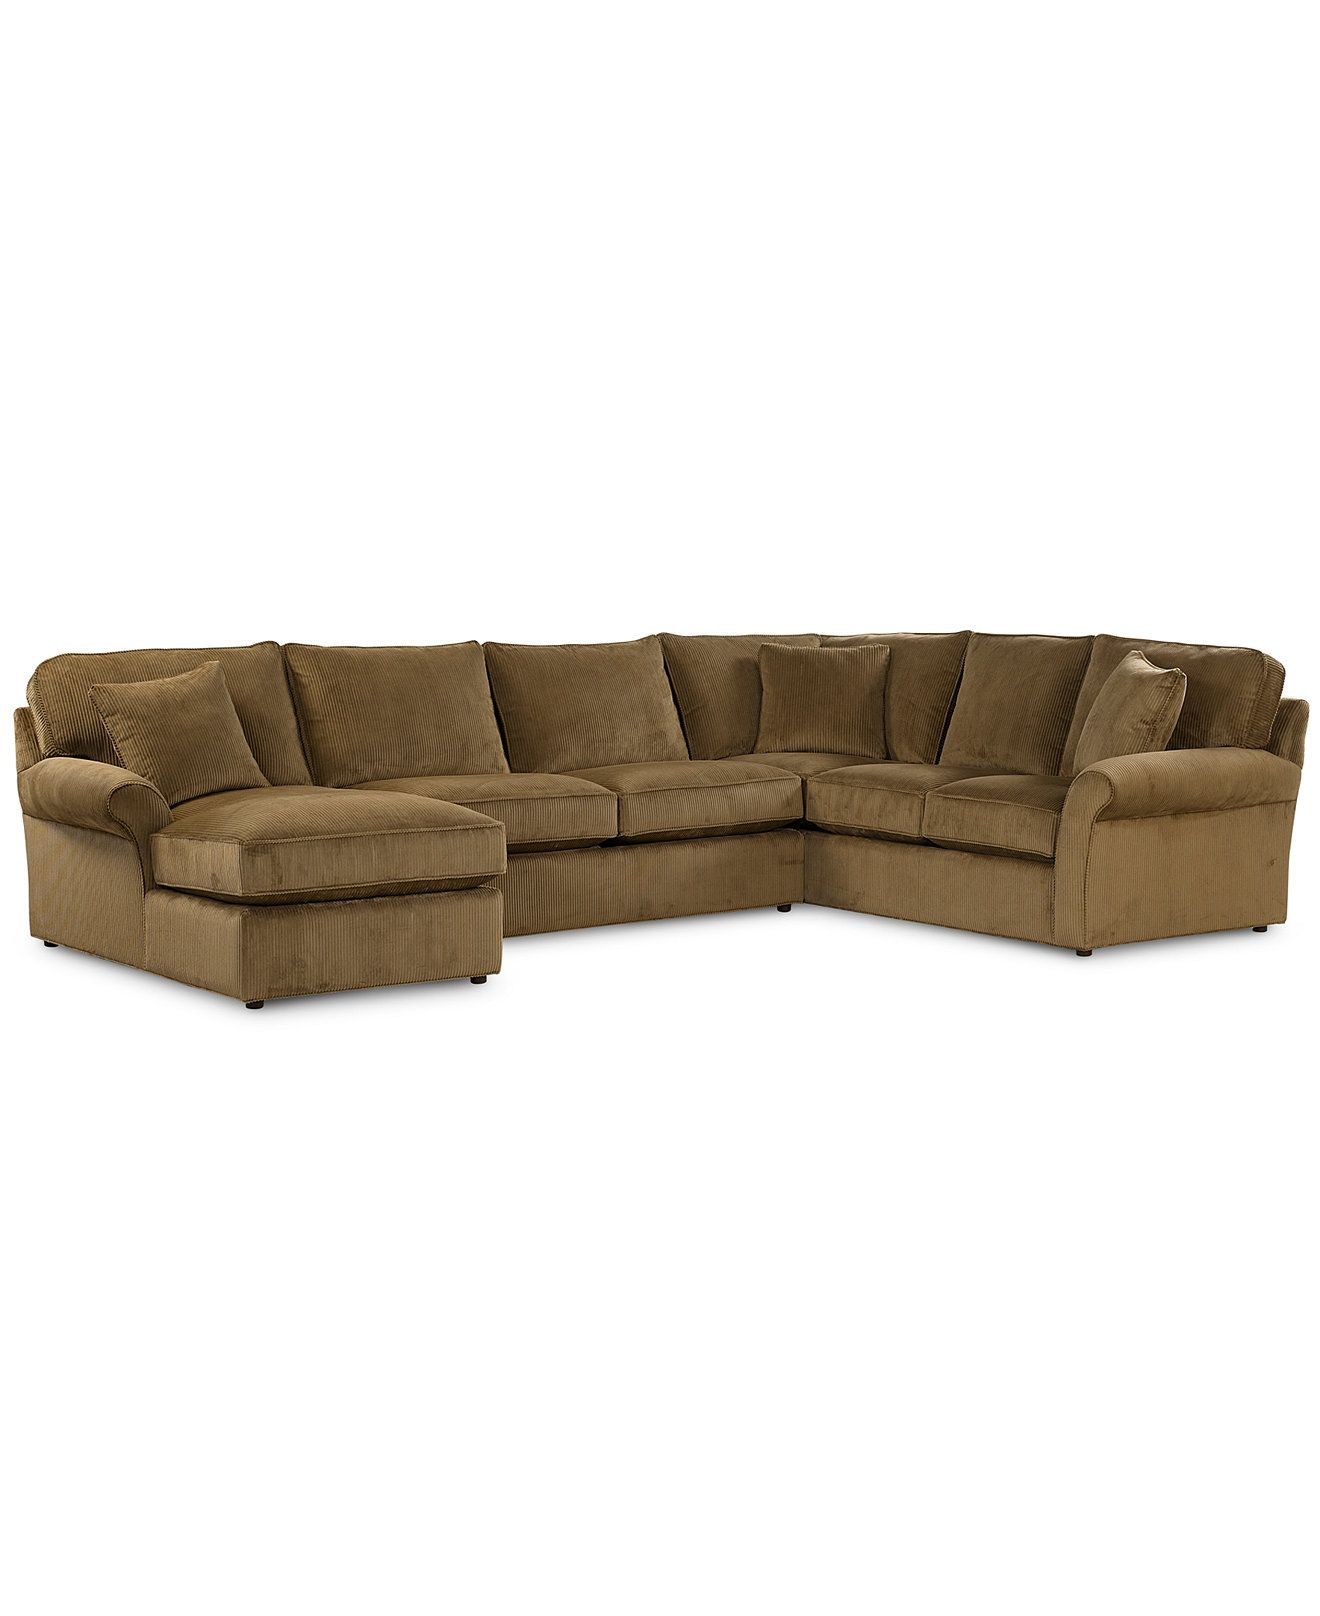 Virtual Fabric Sectional Sofa 3 Piece Chaise Loveseat and Left